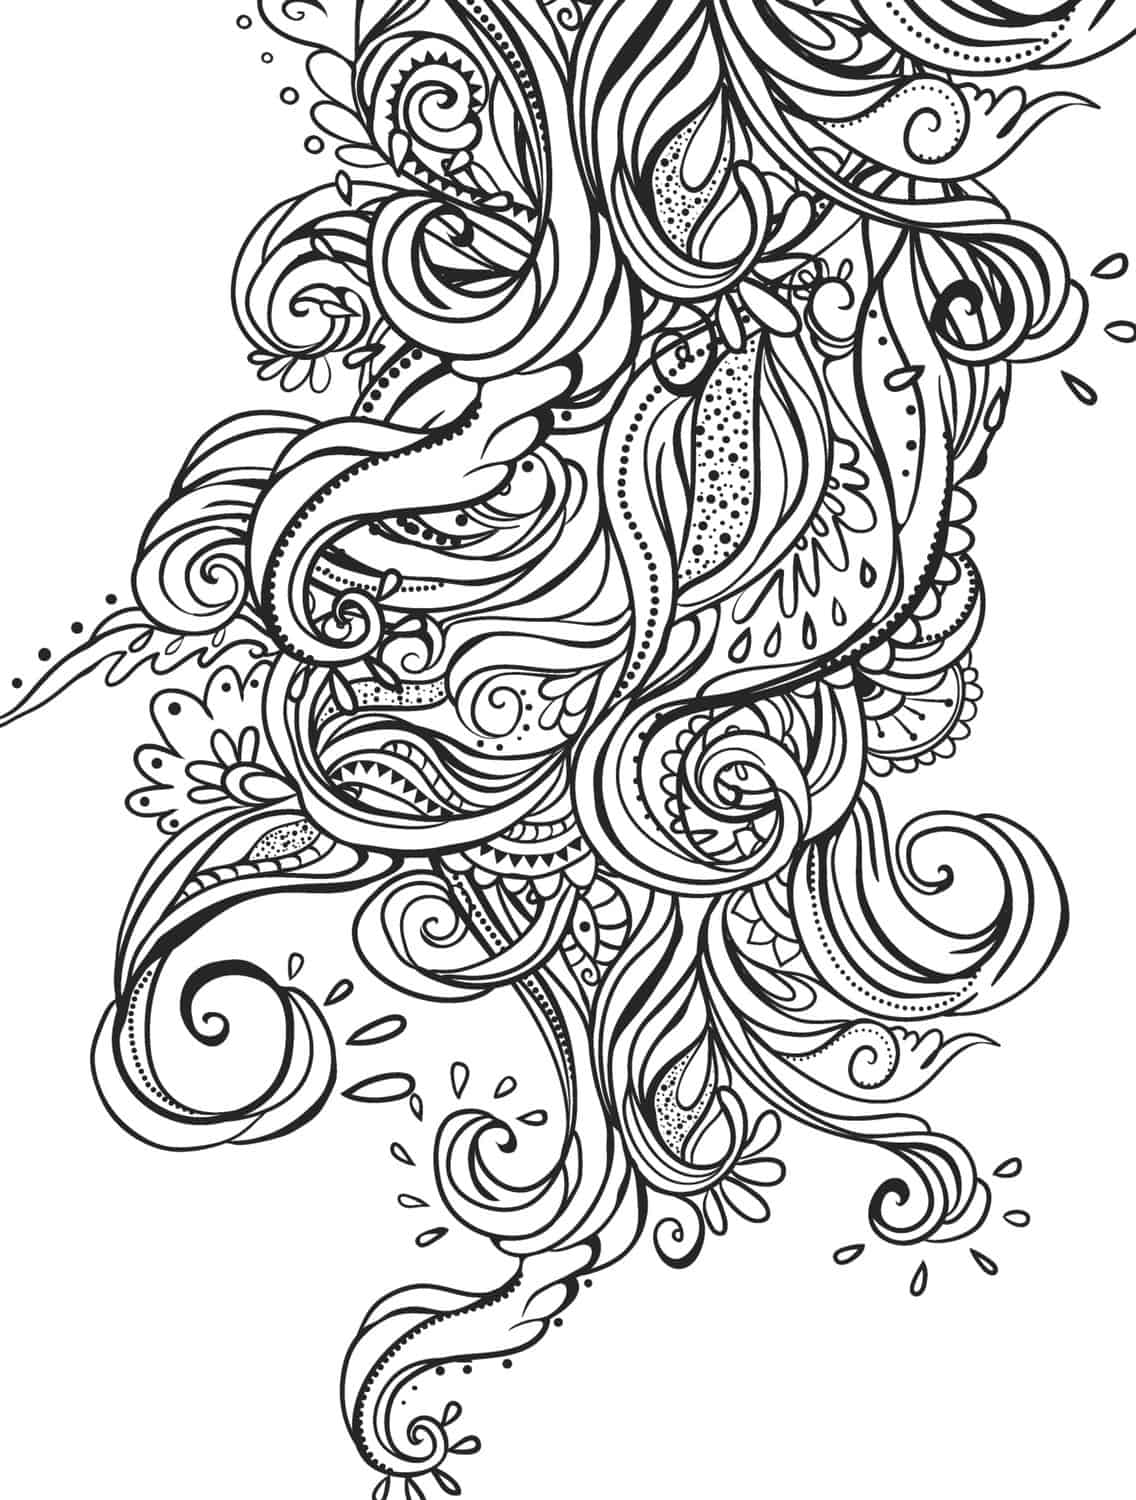 crazy coloring pages for adults - photo#13